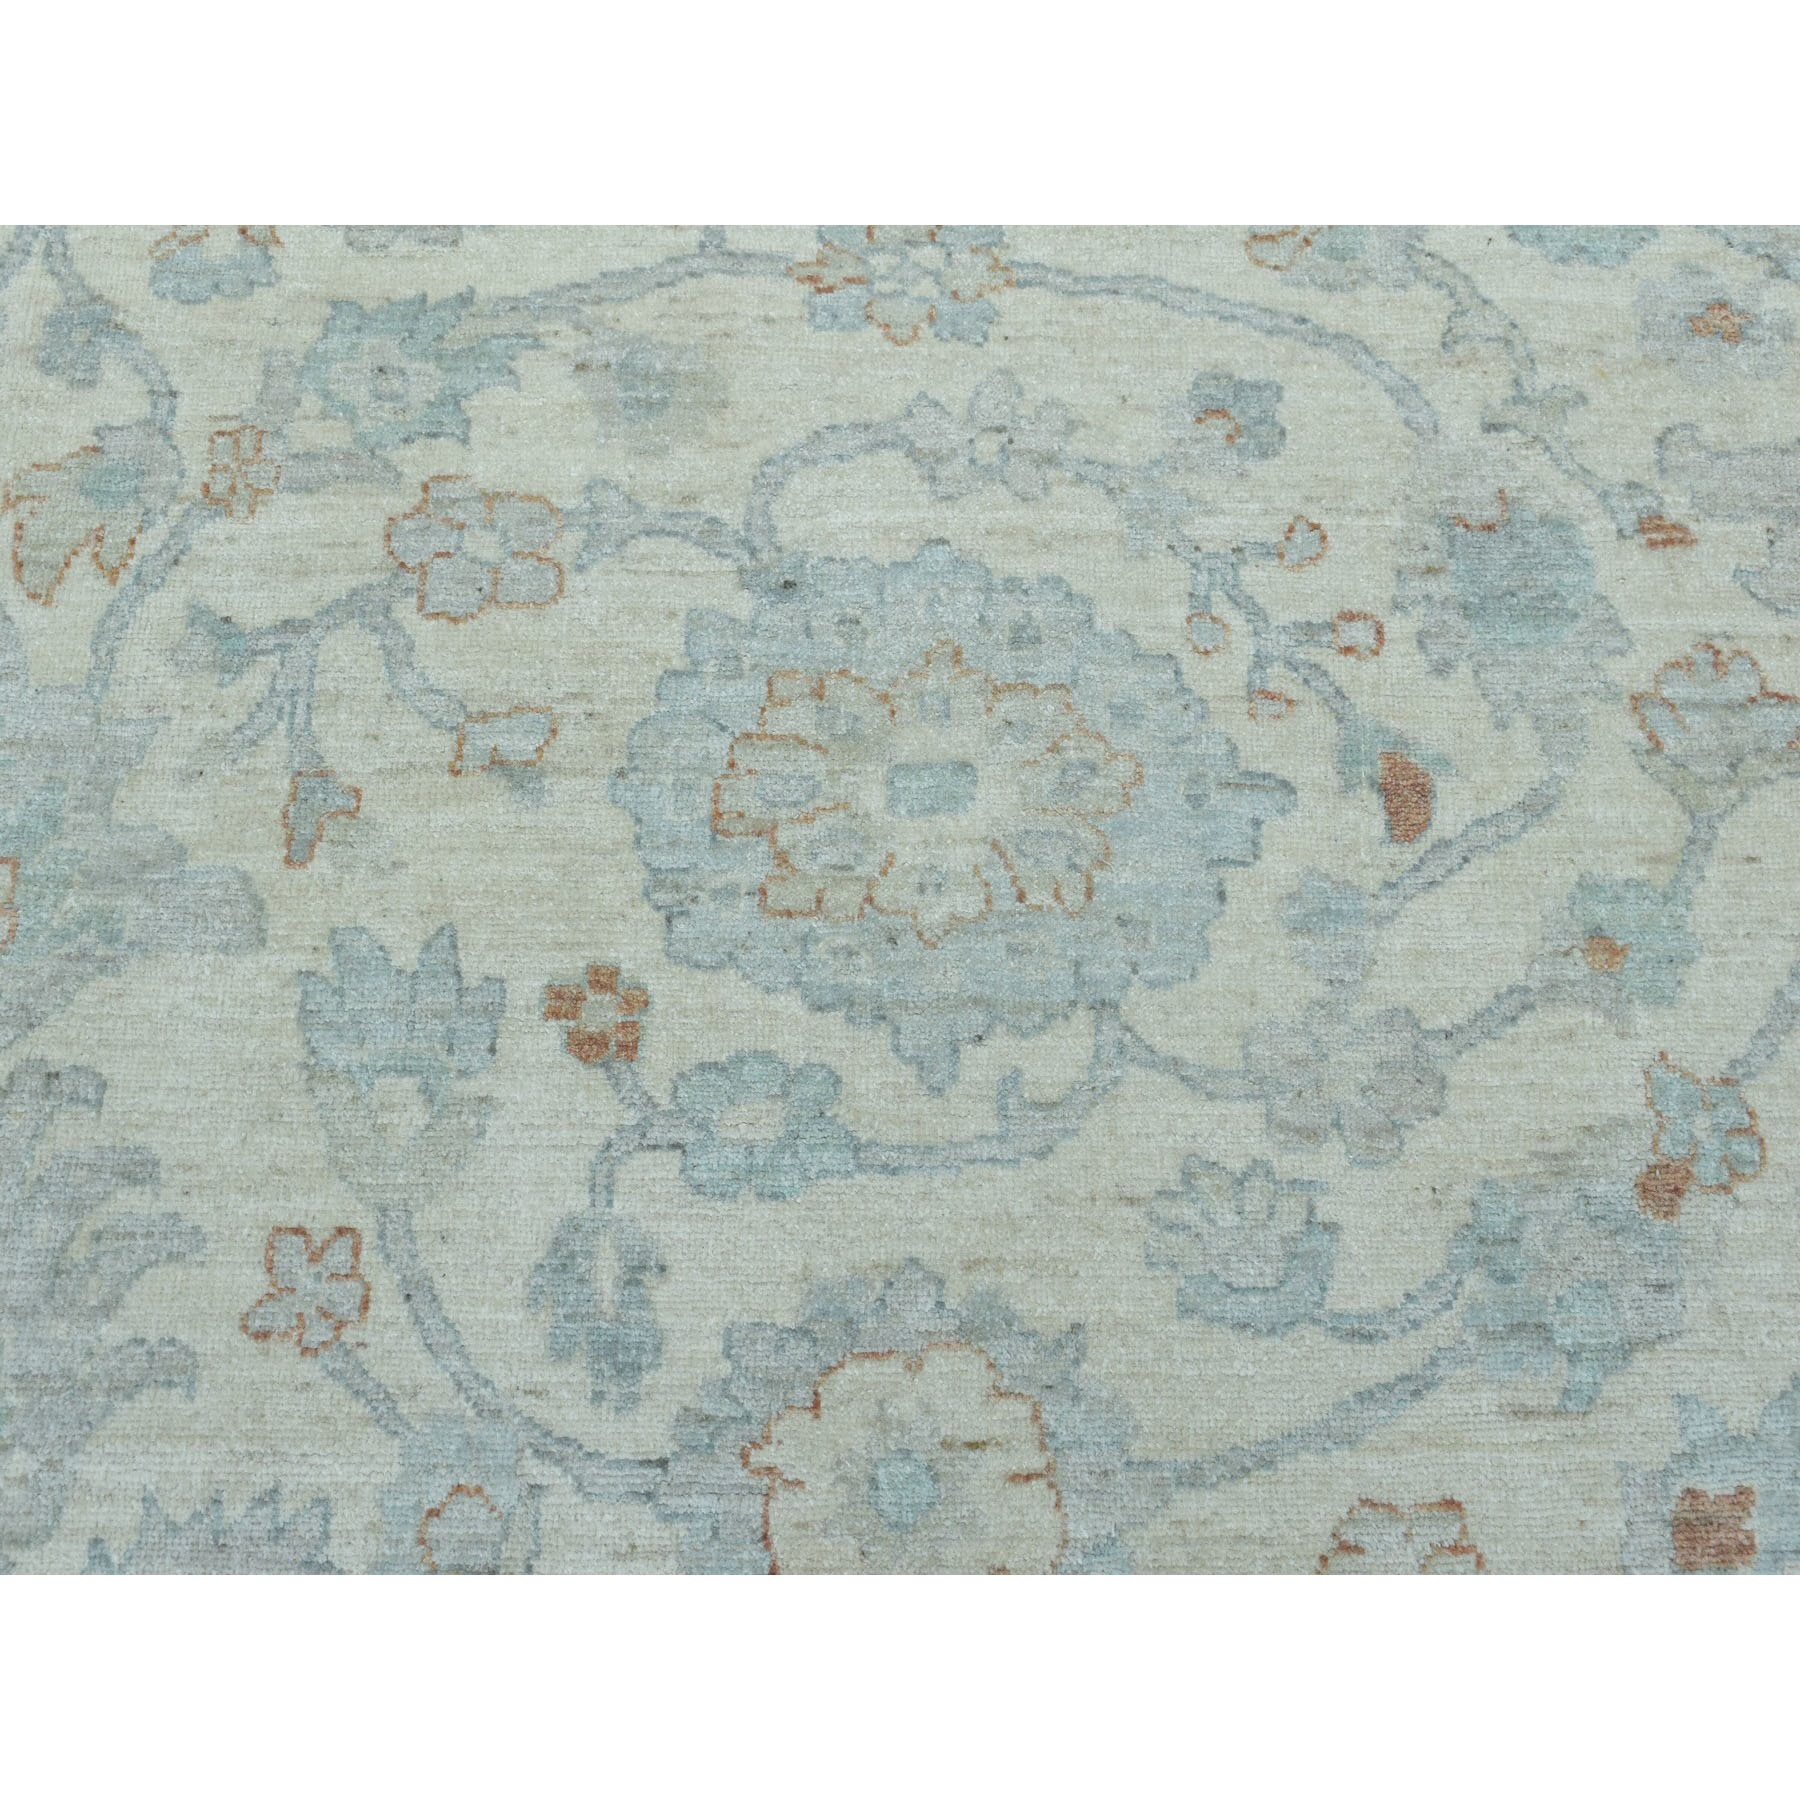 10'x14' White Wash Peshawar Pure Wool Hand Knotted Oriental Rug